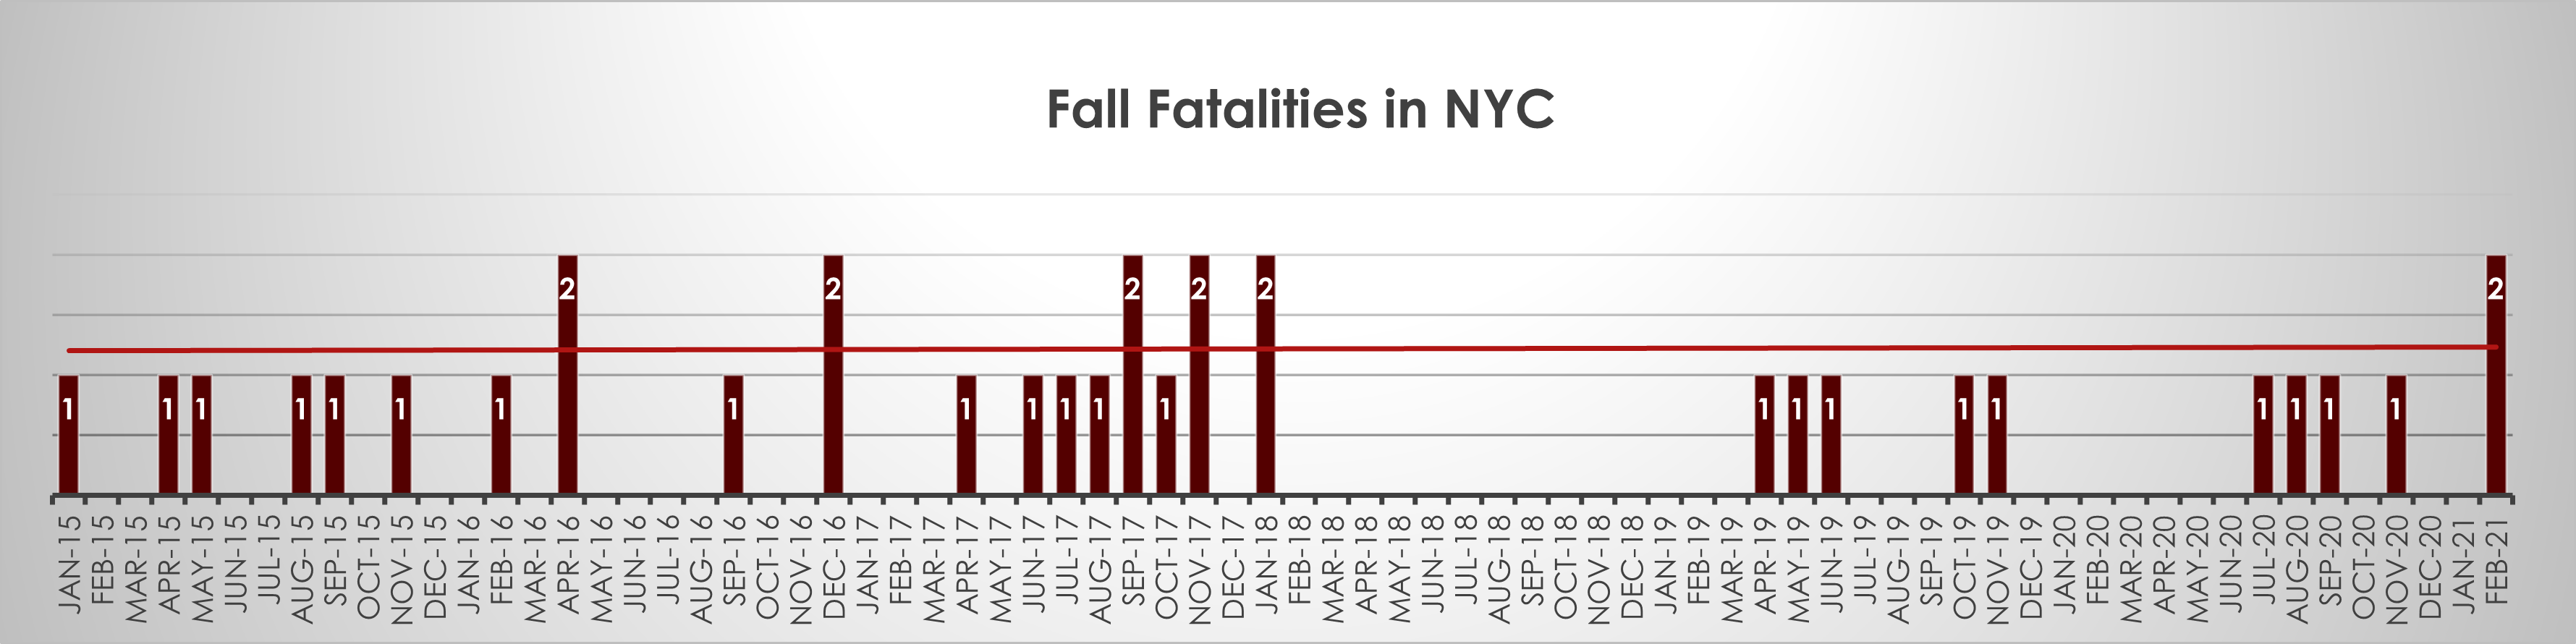 Fall fatalities New York February 21